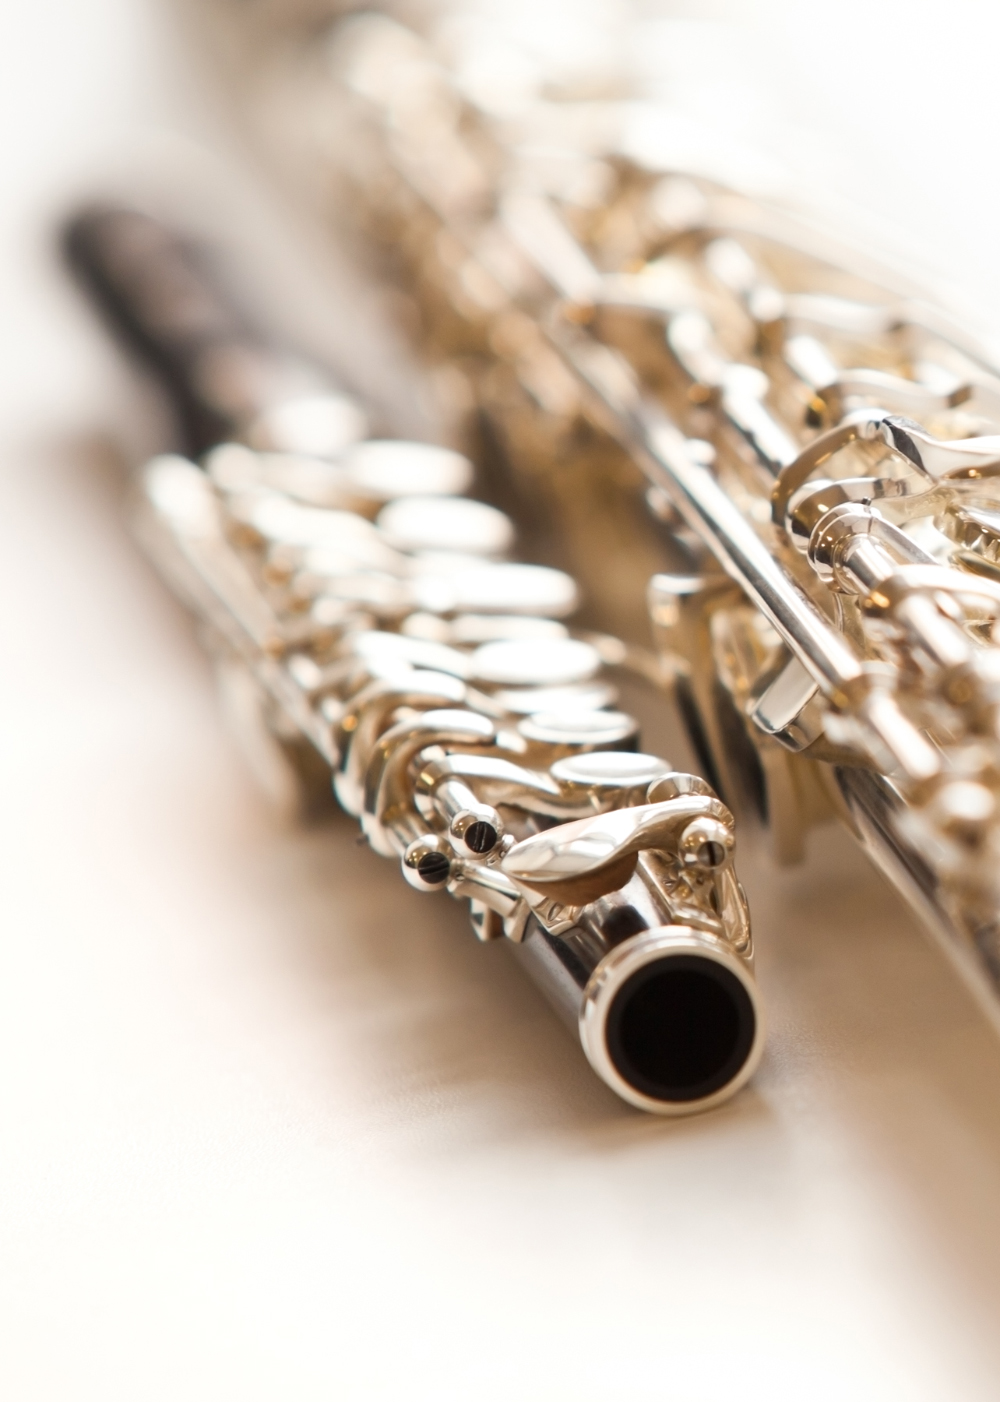 Two flute closeup lying on a light background